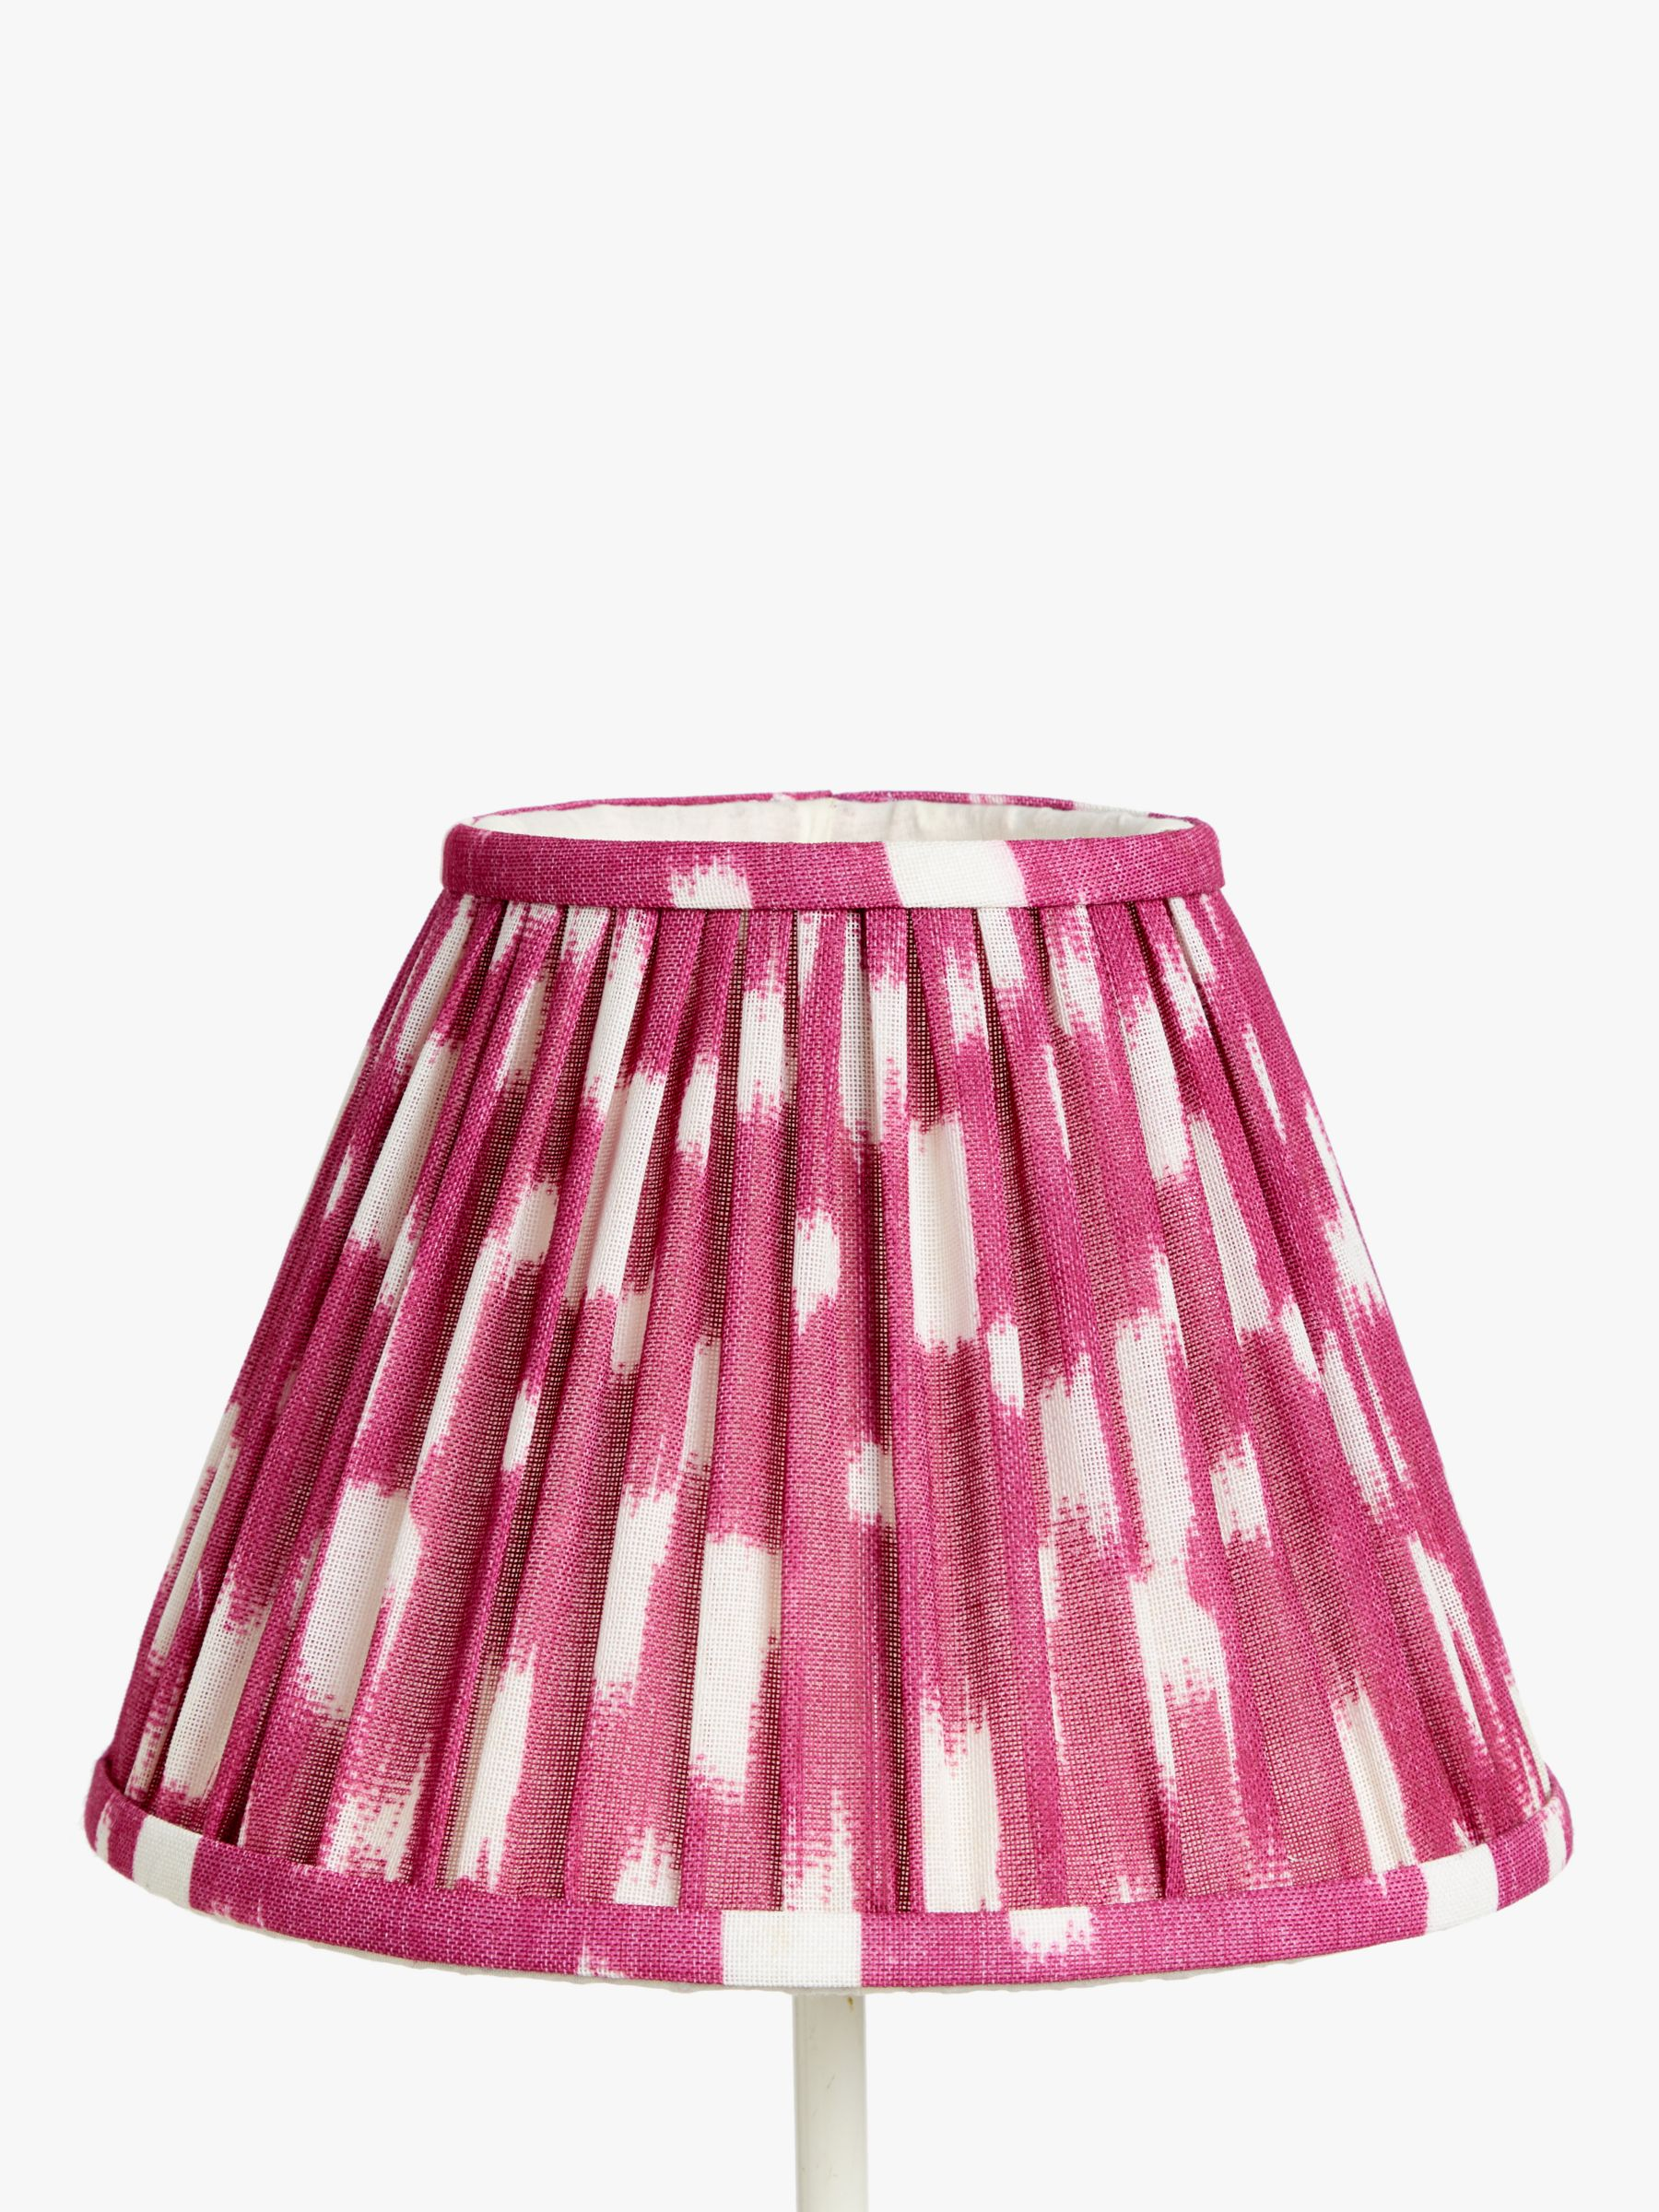 Buy John Lewis & Partners Arrayan Pleated Lampshade, Pomegranate, Dia.25cm Online at johnlewis.com